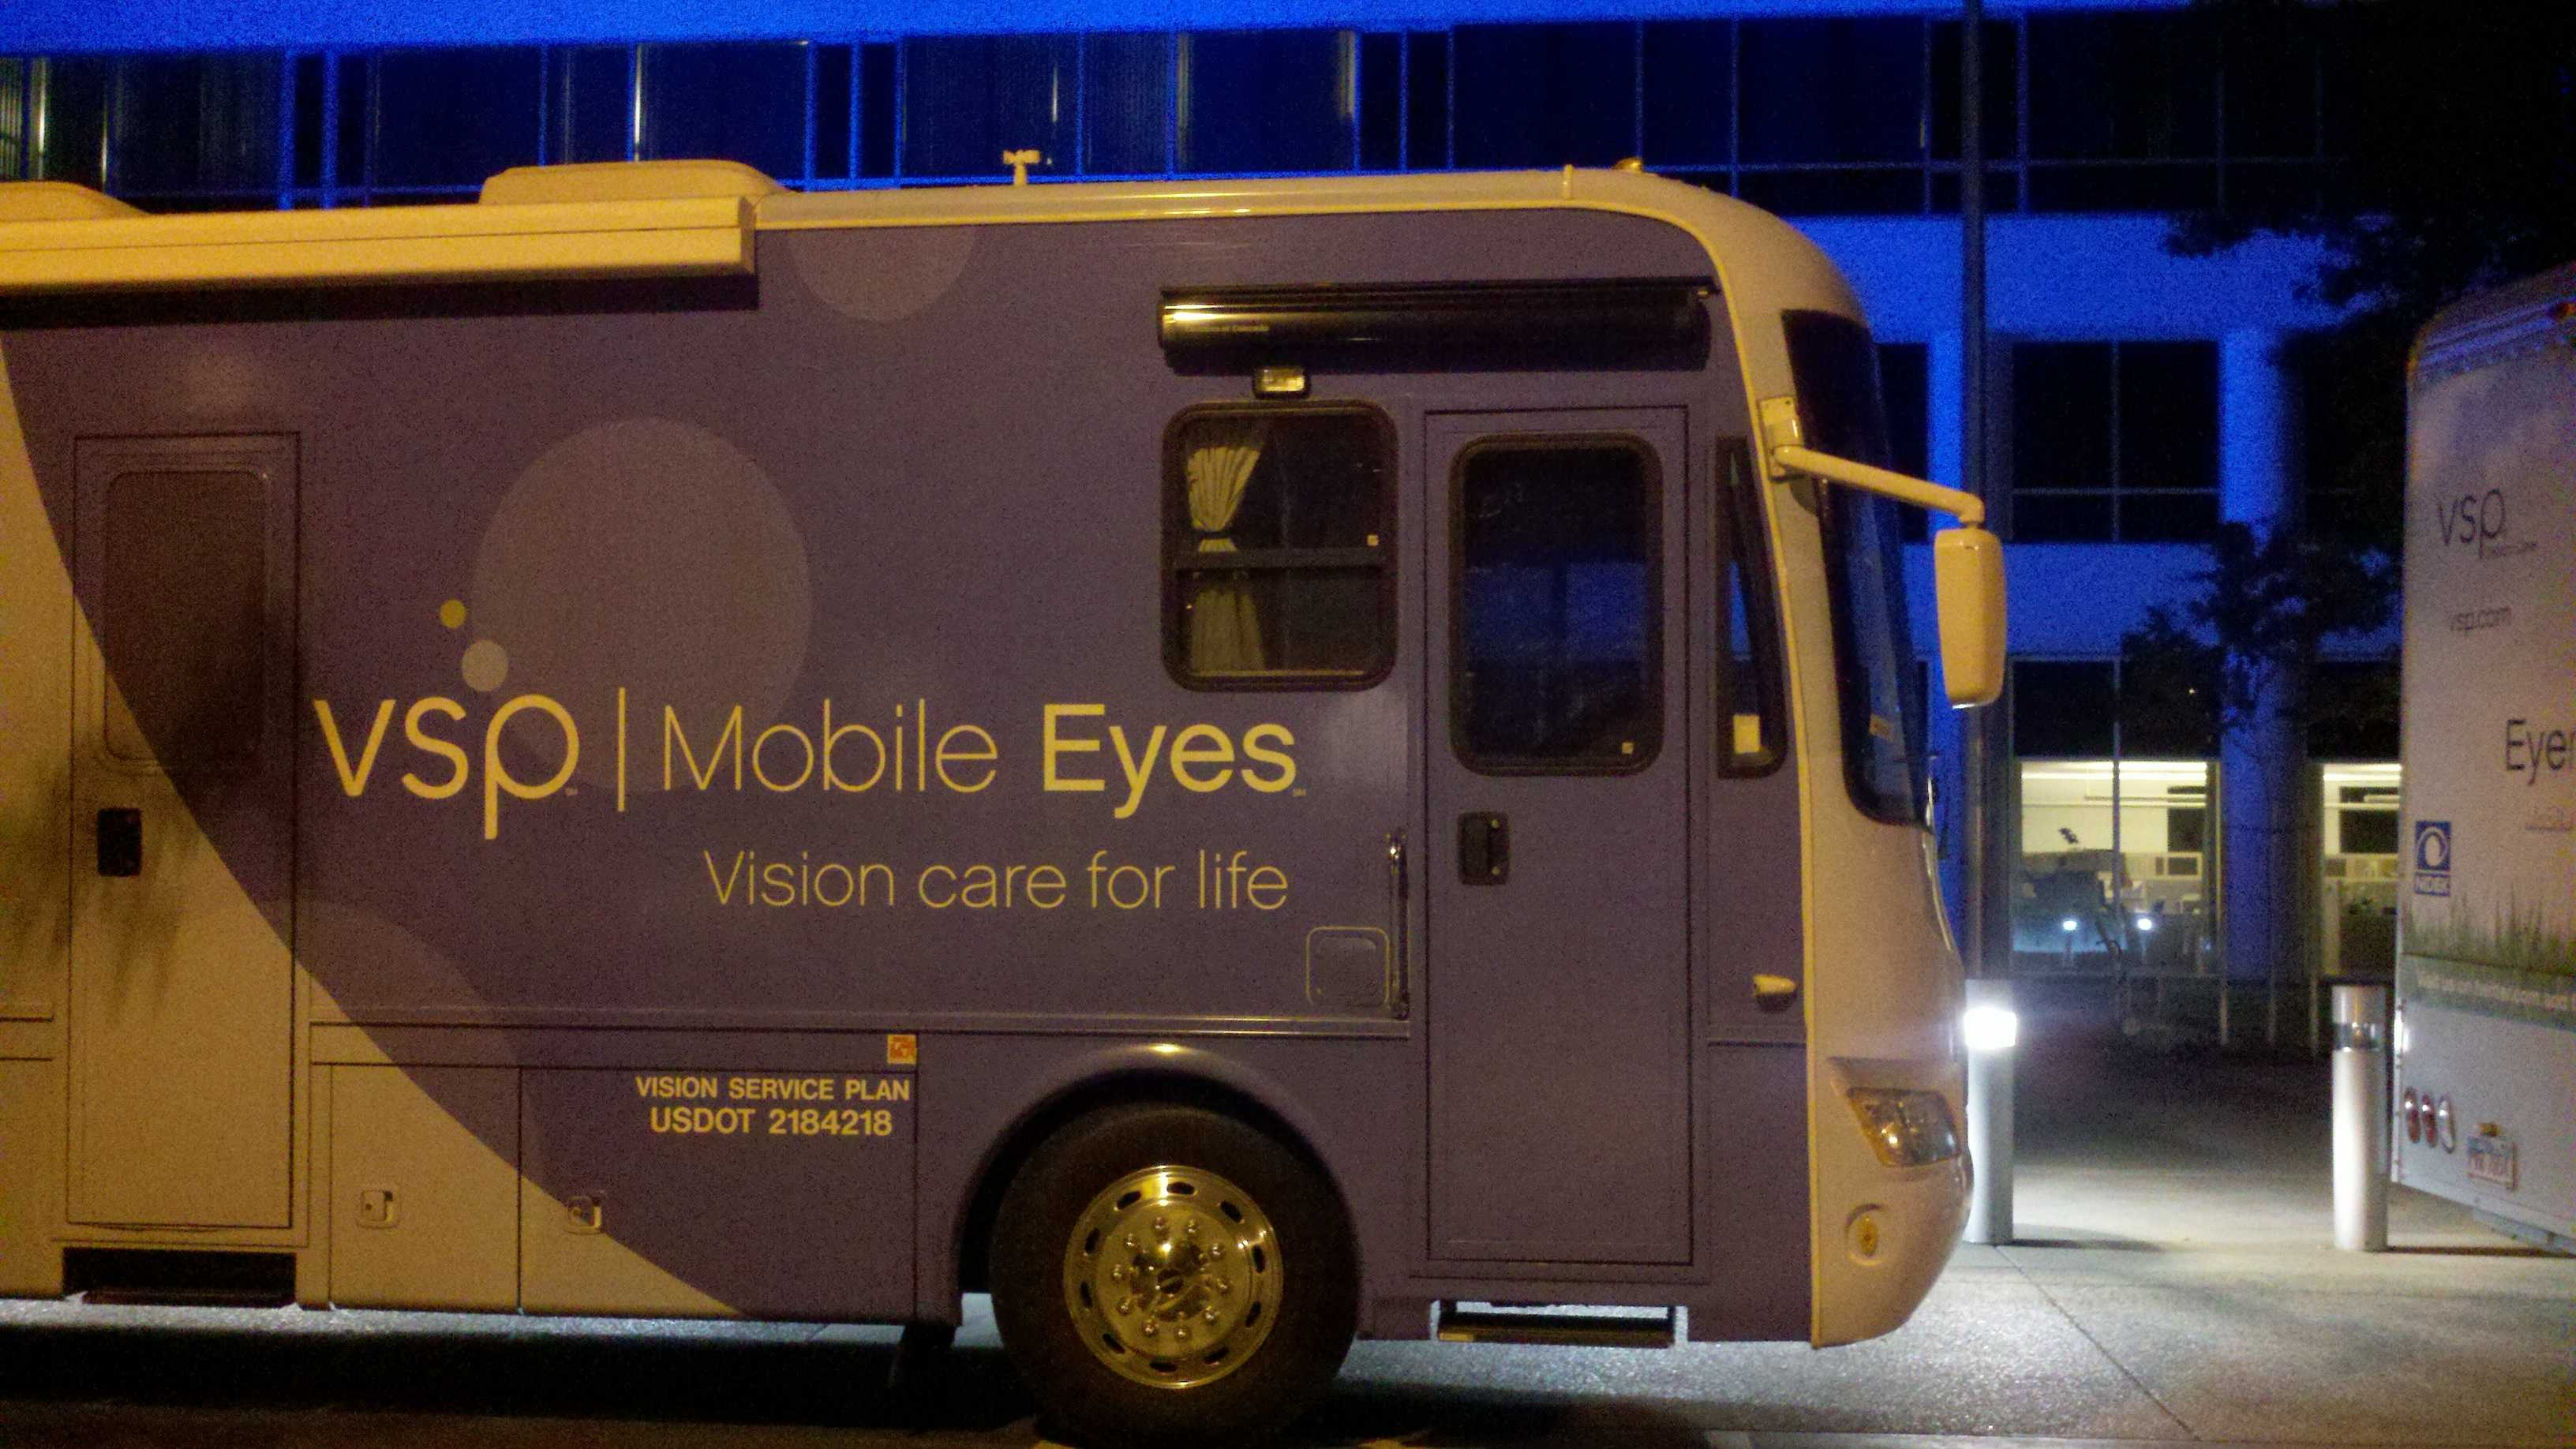 One of two 40-foot mobile eye care clinics departs Rancho Cordova headed for the New York area.